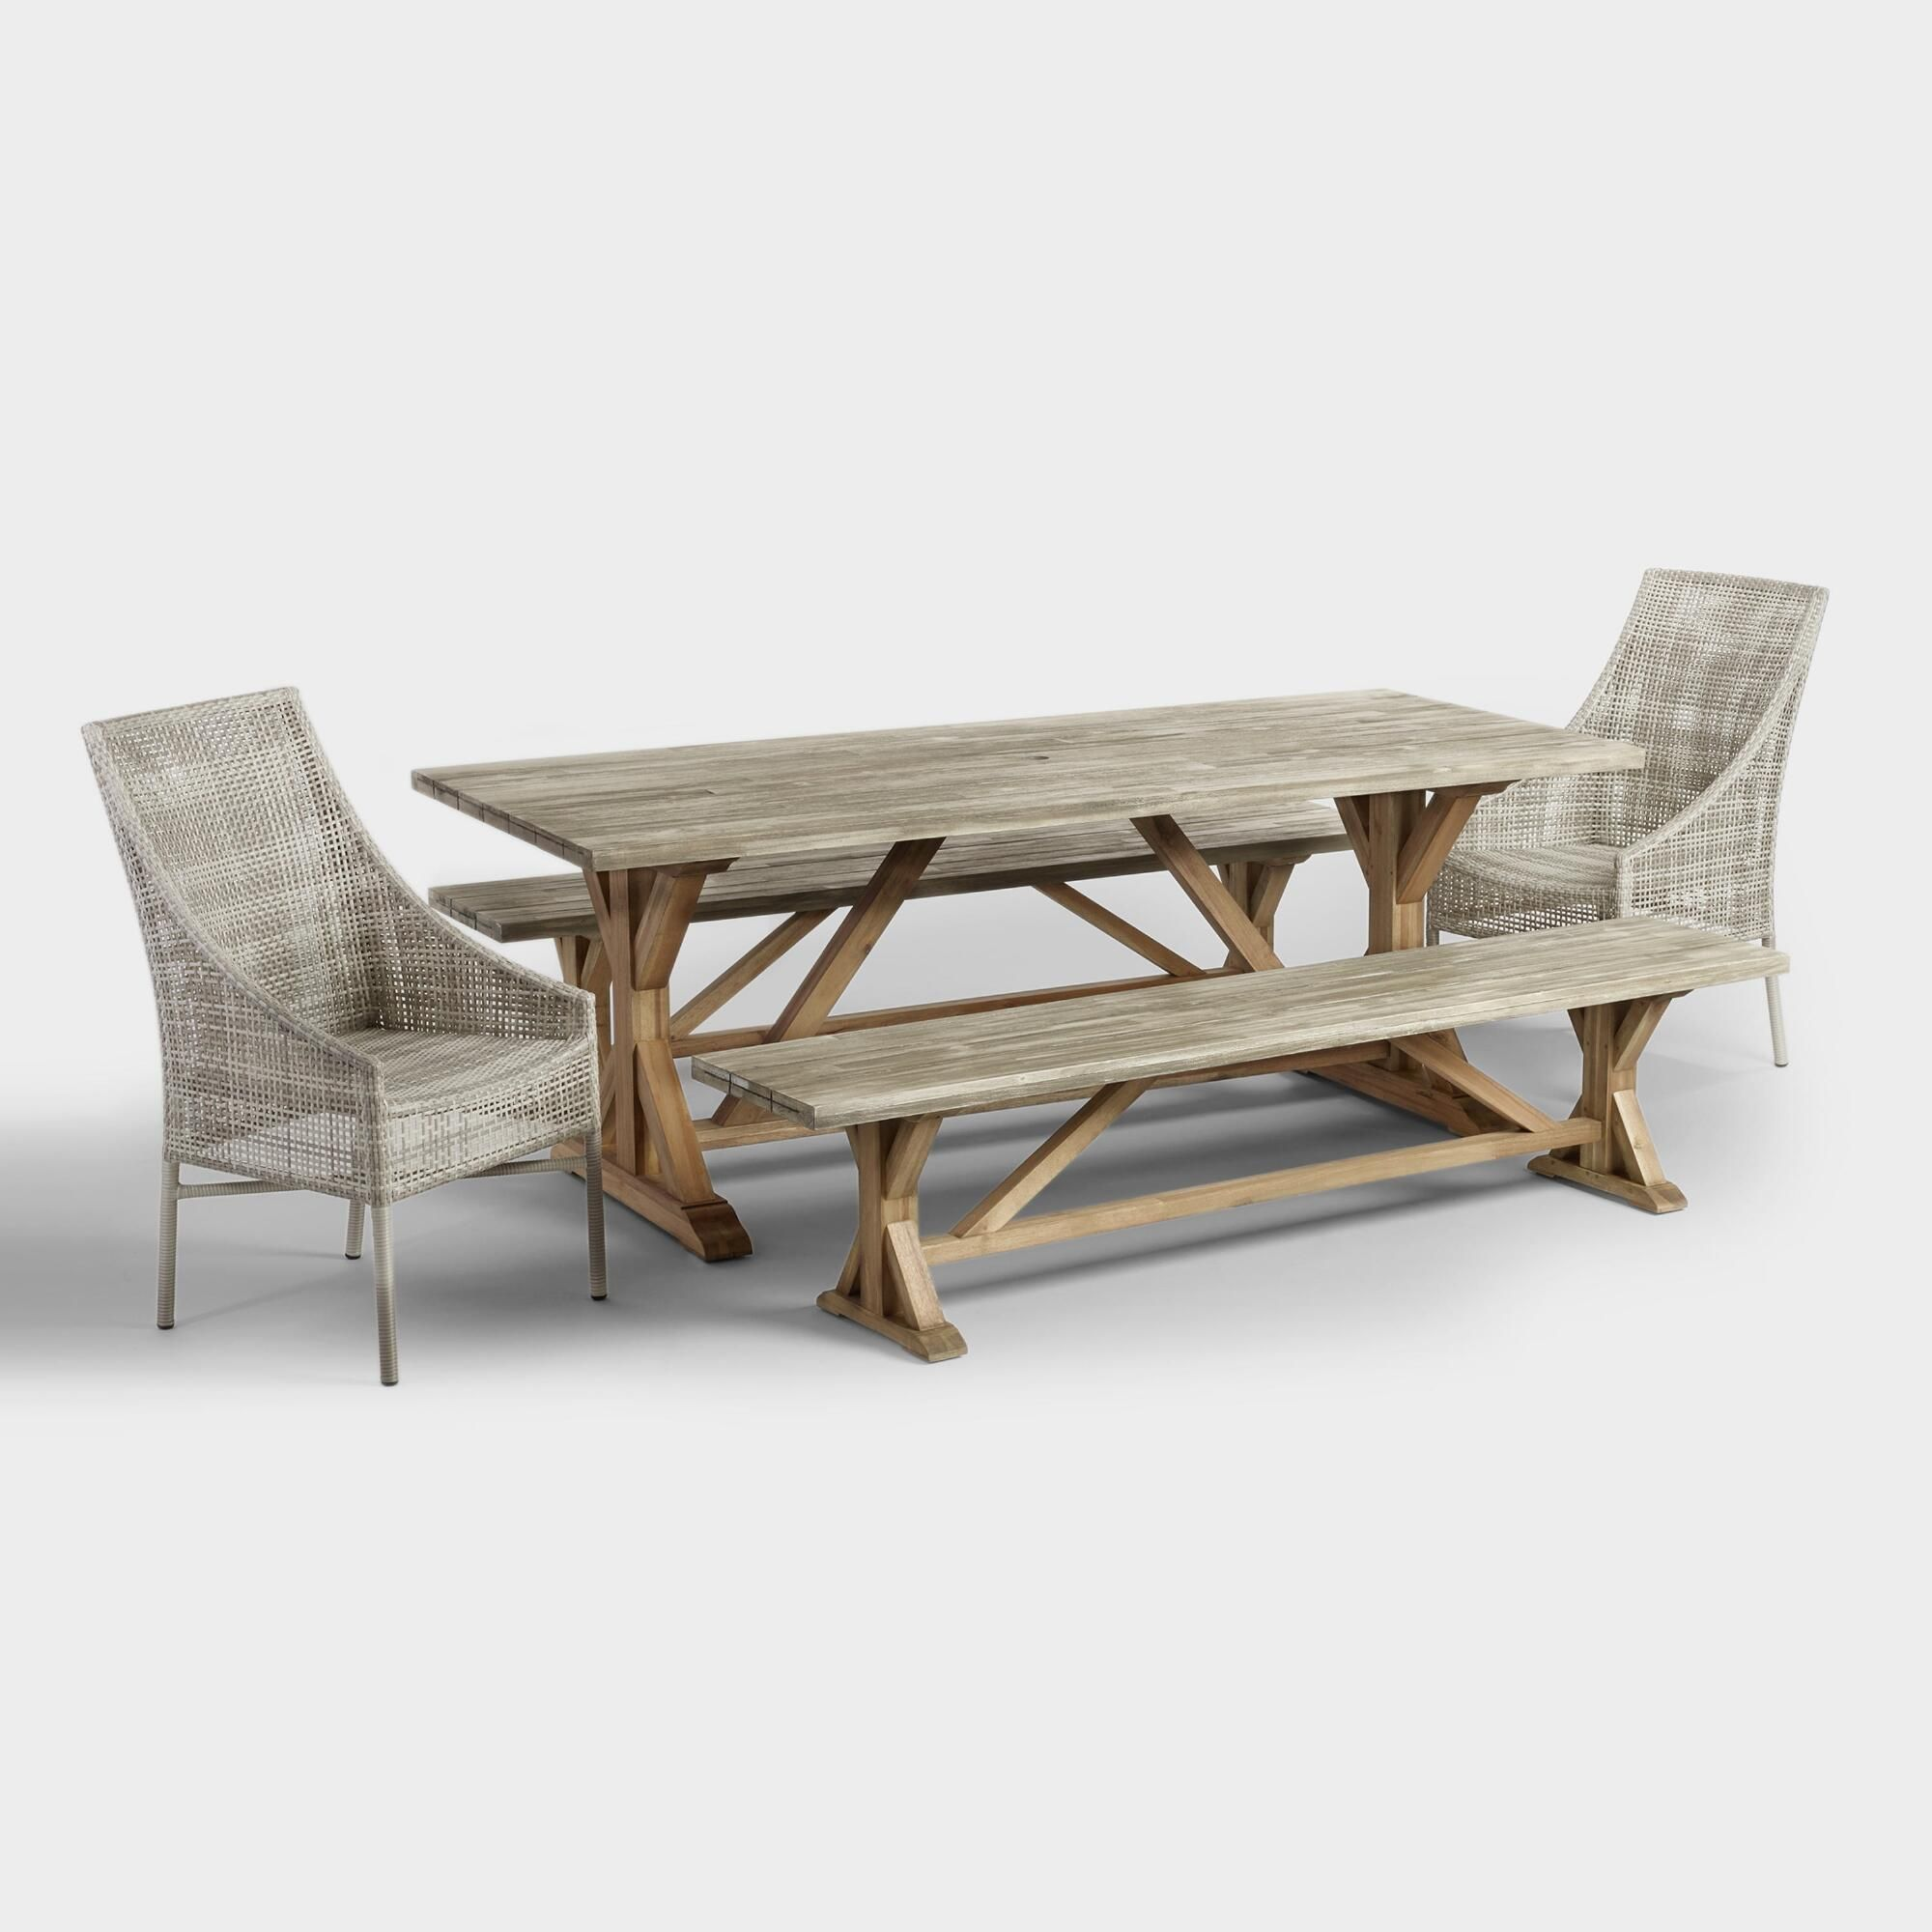 San Remo Outdoor Dining Collection Outdoor Dining Furniture